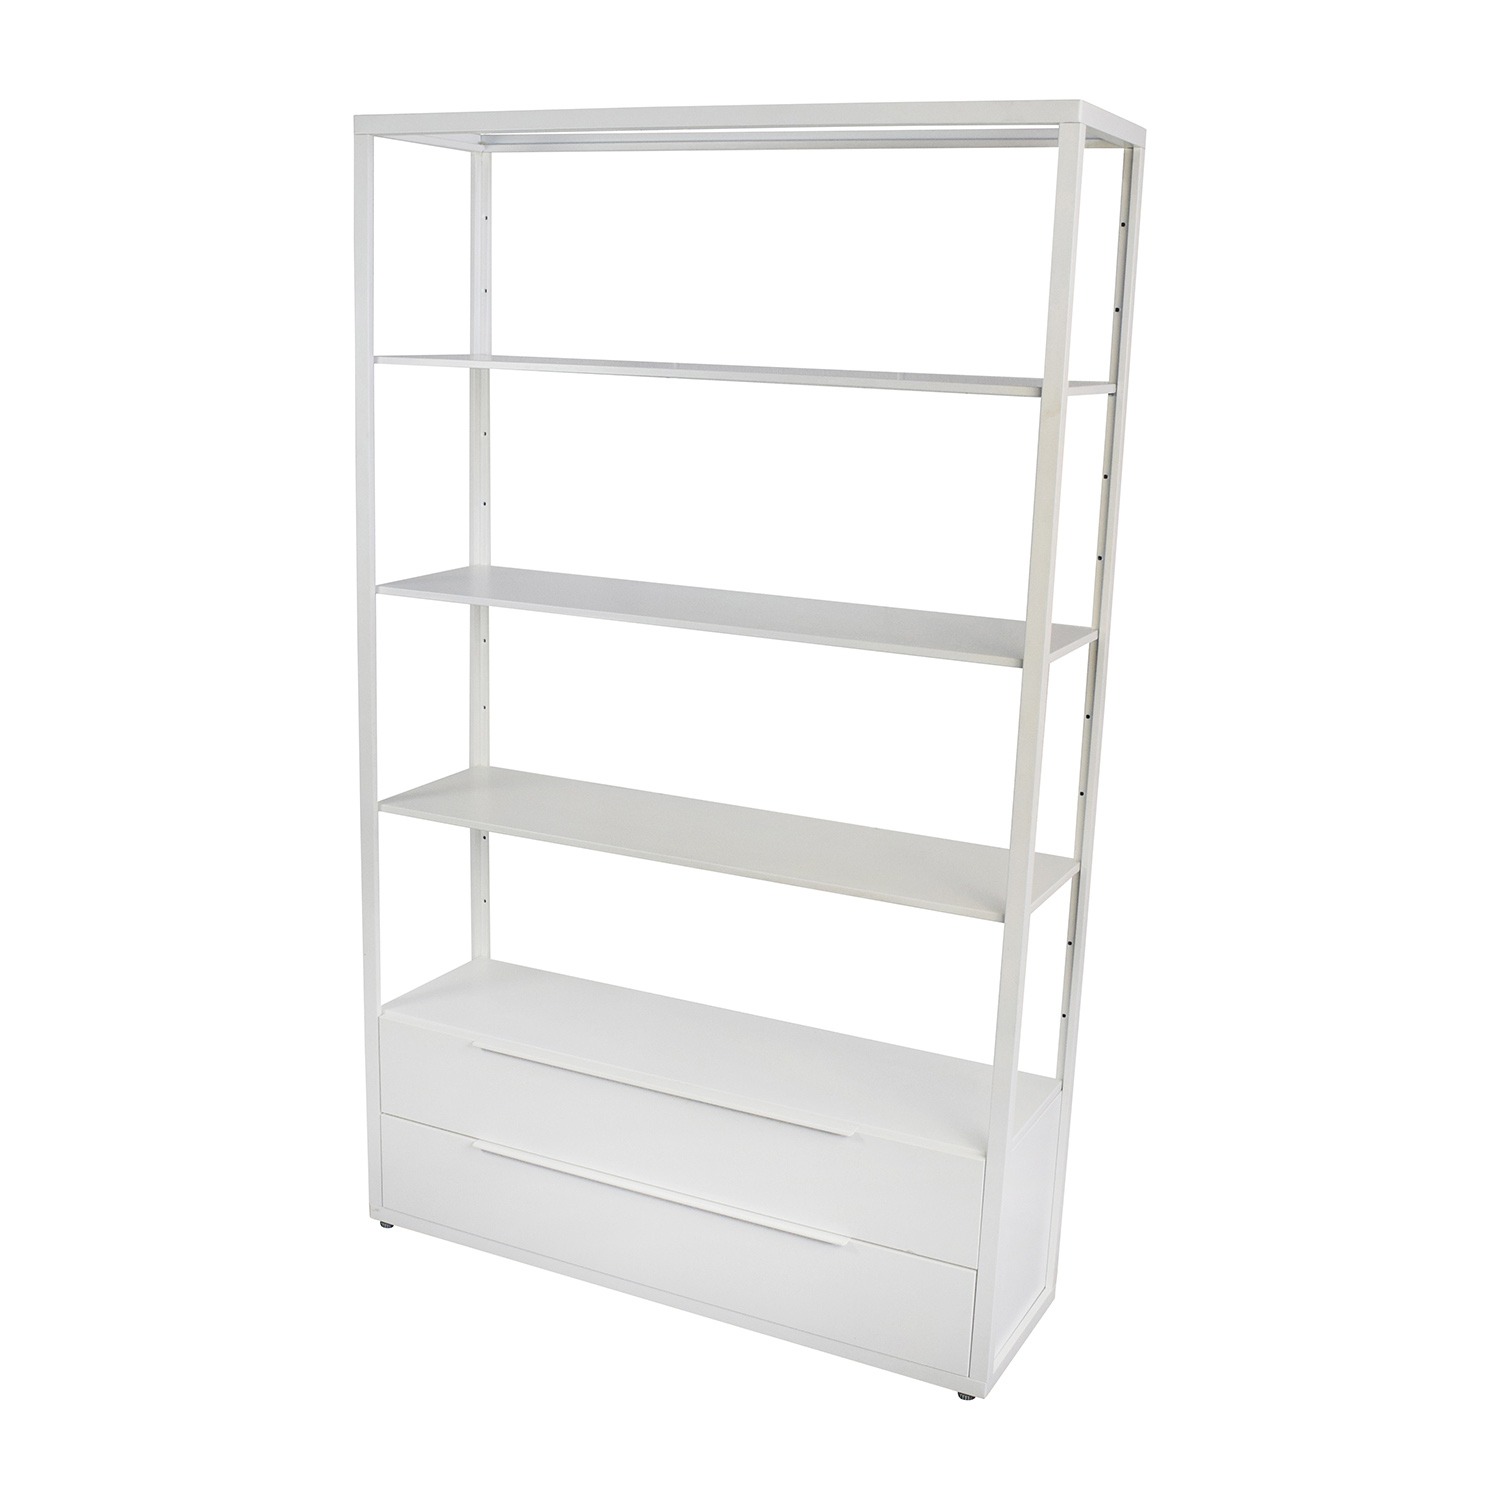 Off ikea white shelving unit with drawers storage